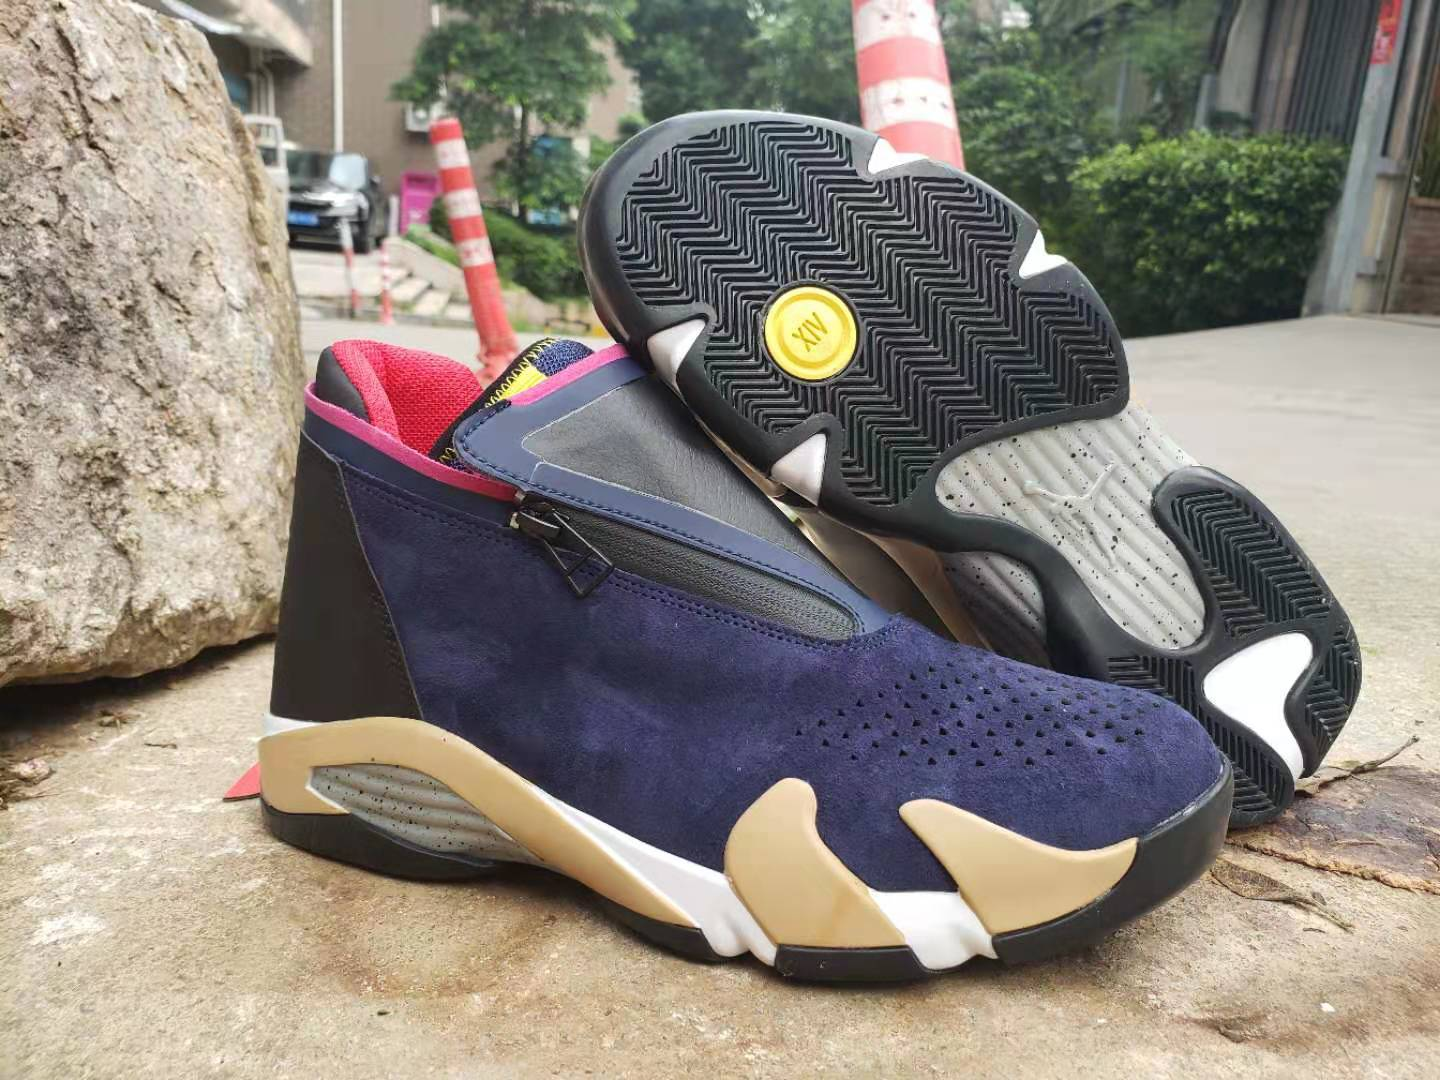 2019 Air Jordan 14 Zipper Sea Blue Brown Black White Shoes